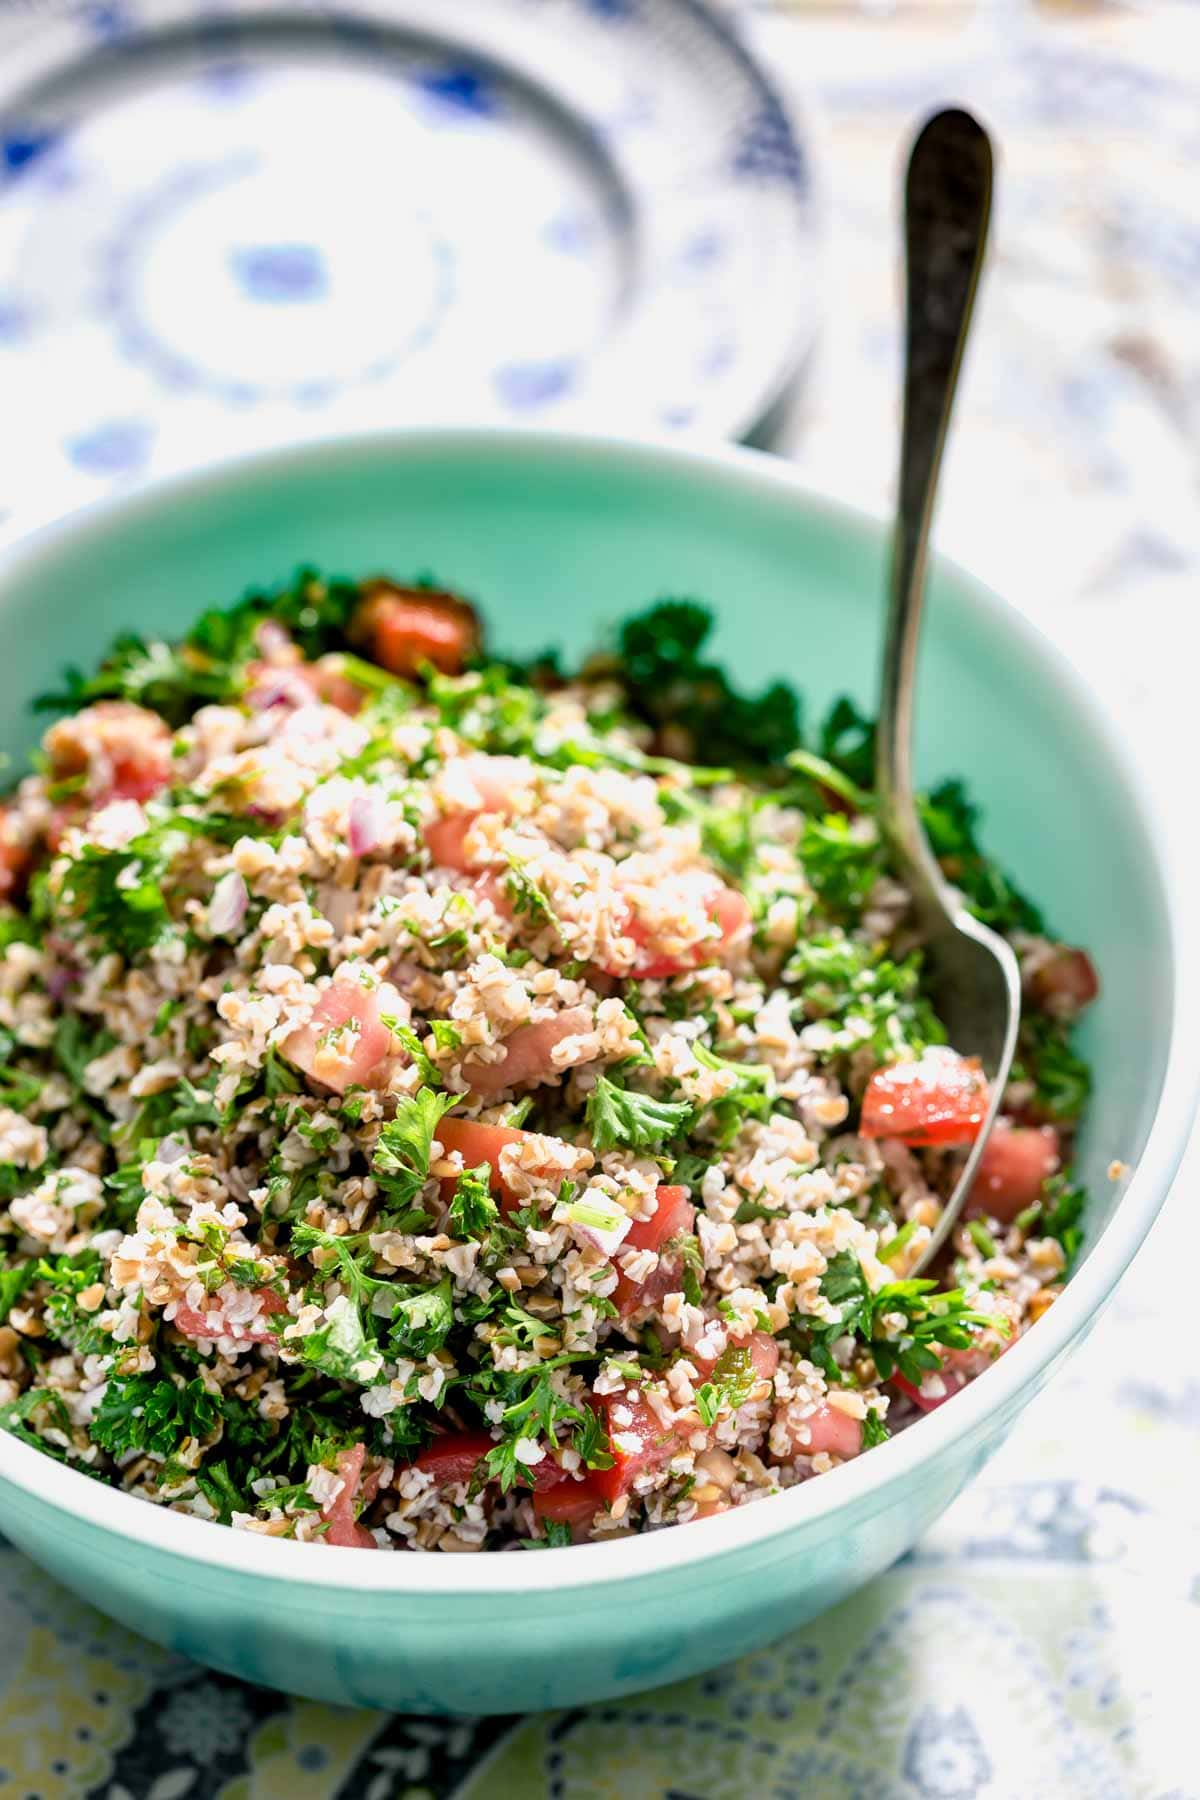 a teal bowl with tabbouleh in it